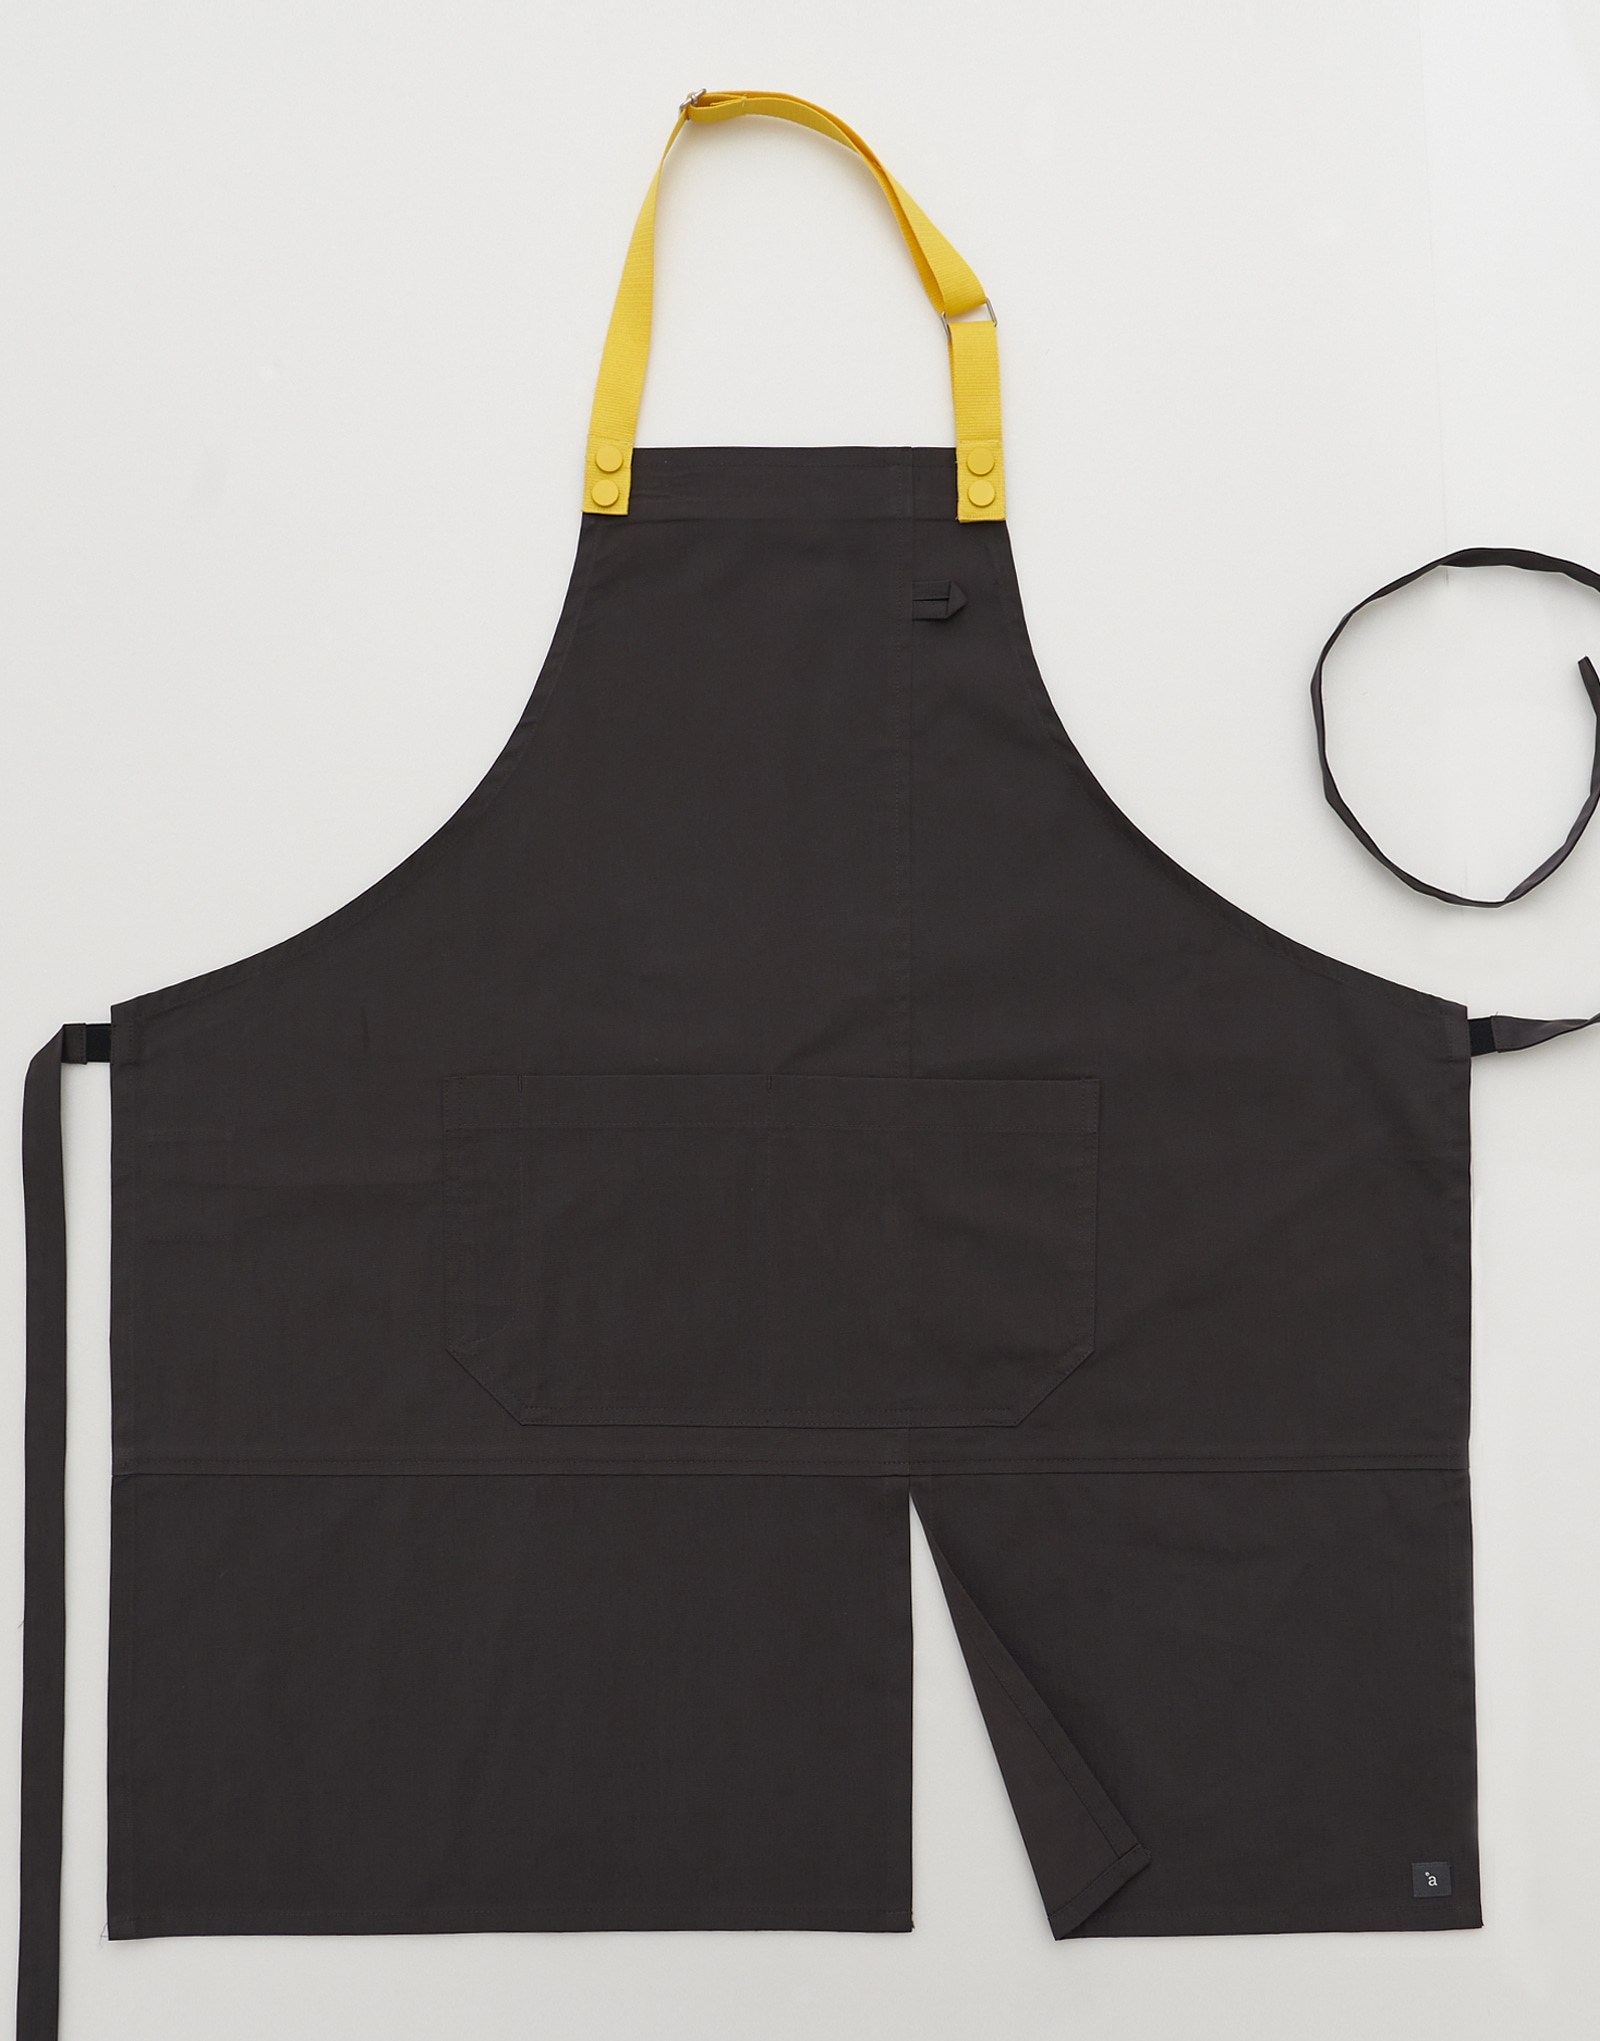 Lego strap change apron #AA1983 Dark grey